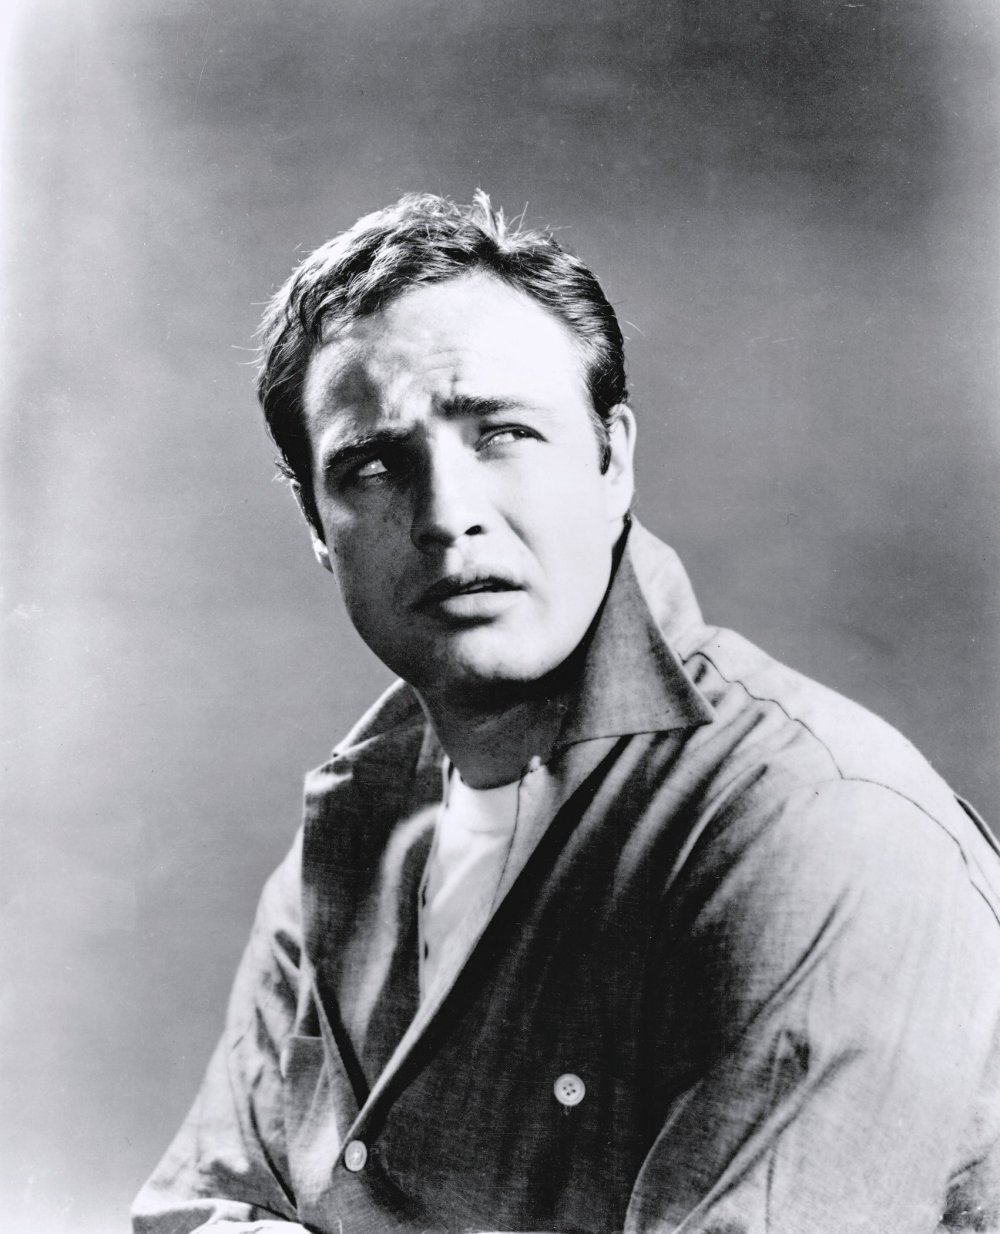 Marlon Brando as Terry Molloy in On the Waterfront (1955)